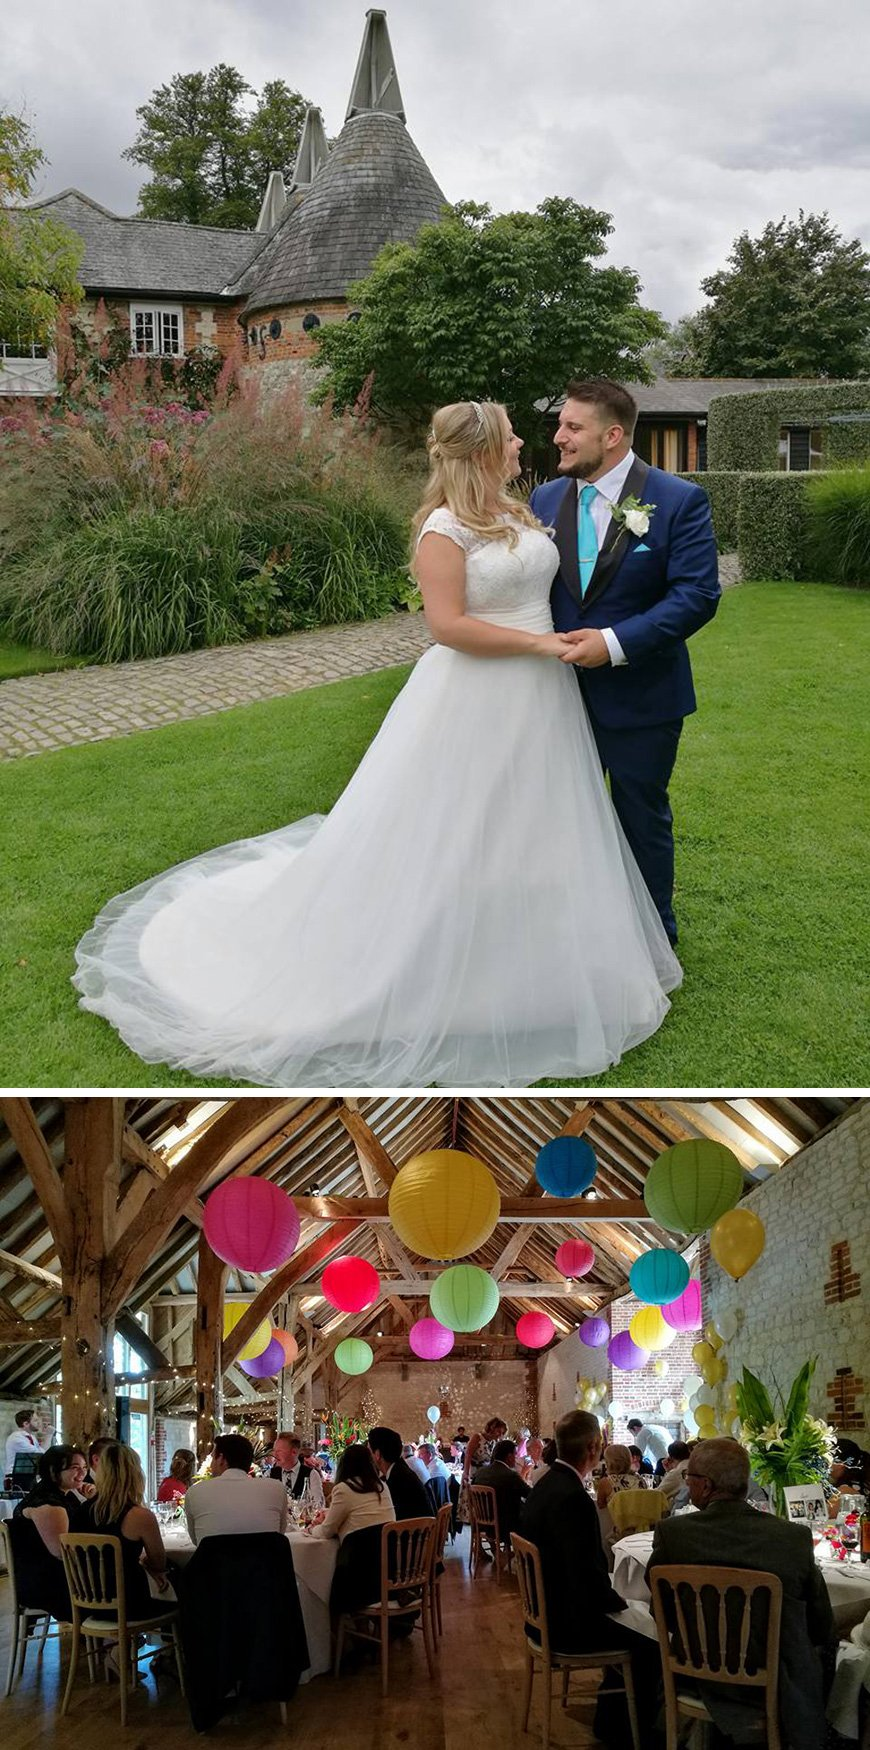 Real Wedding - Emma and Pete's Colourful Summer Wedding at Bury Court Barn | CHWV